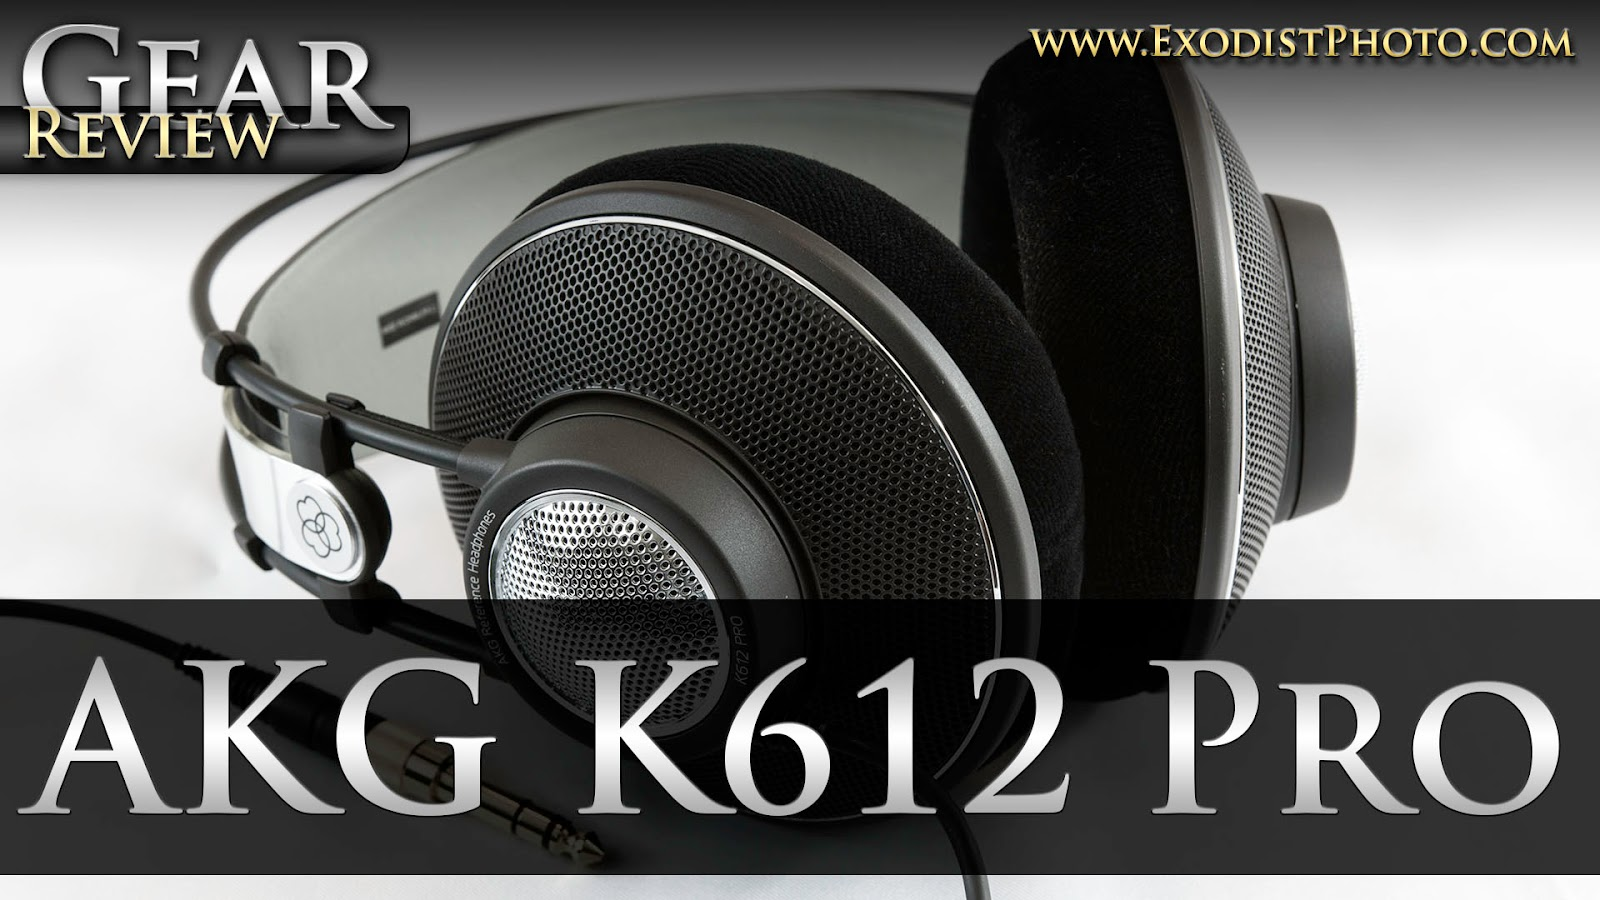 AKG K612 Pro Reference Class Studio Headphones, Hear What You Have Been Missing | Gear Review